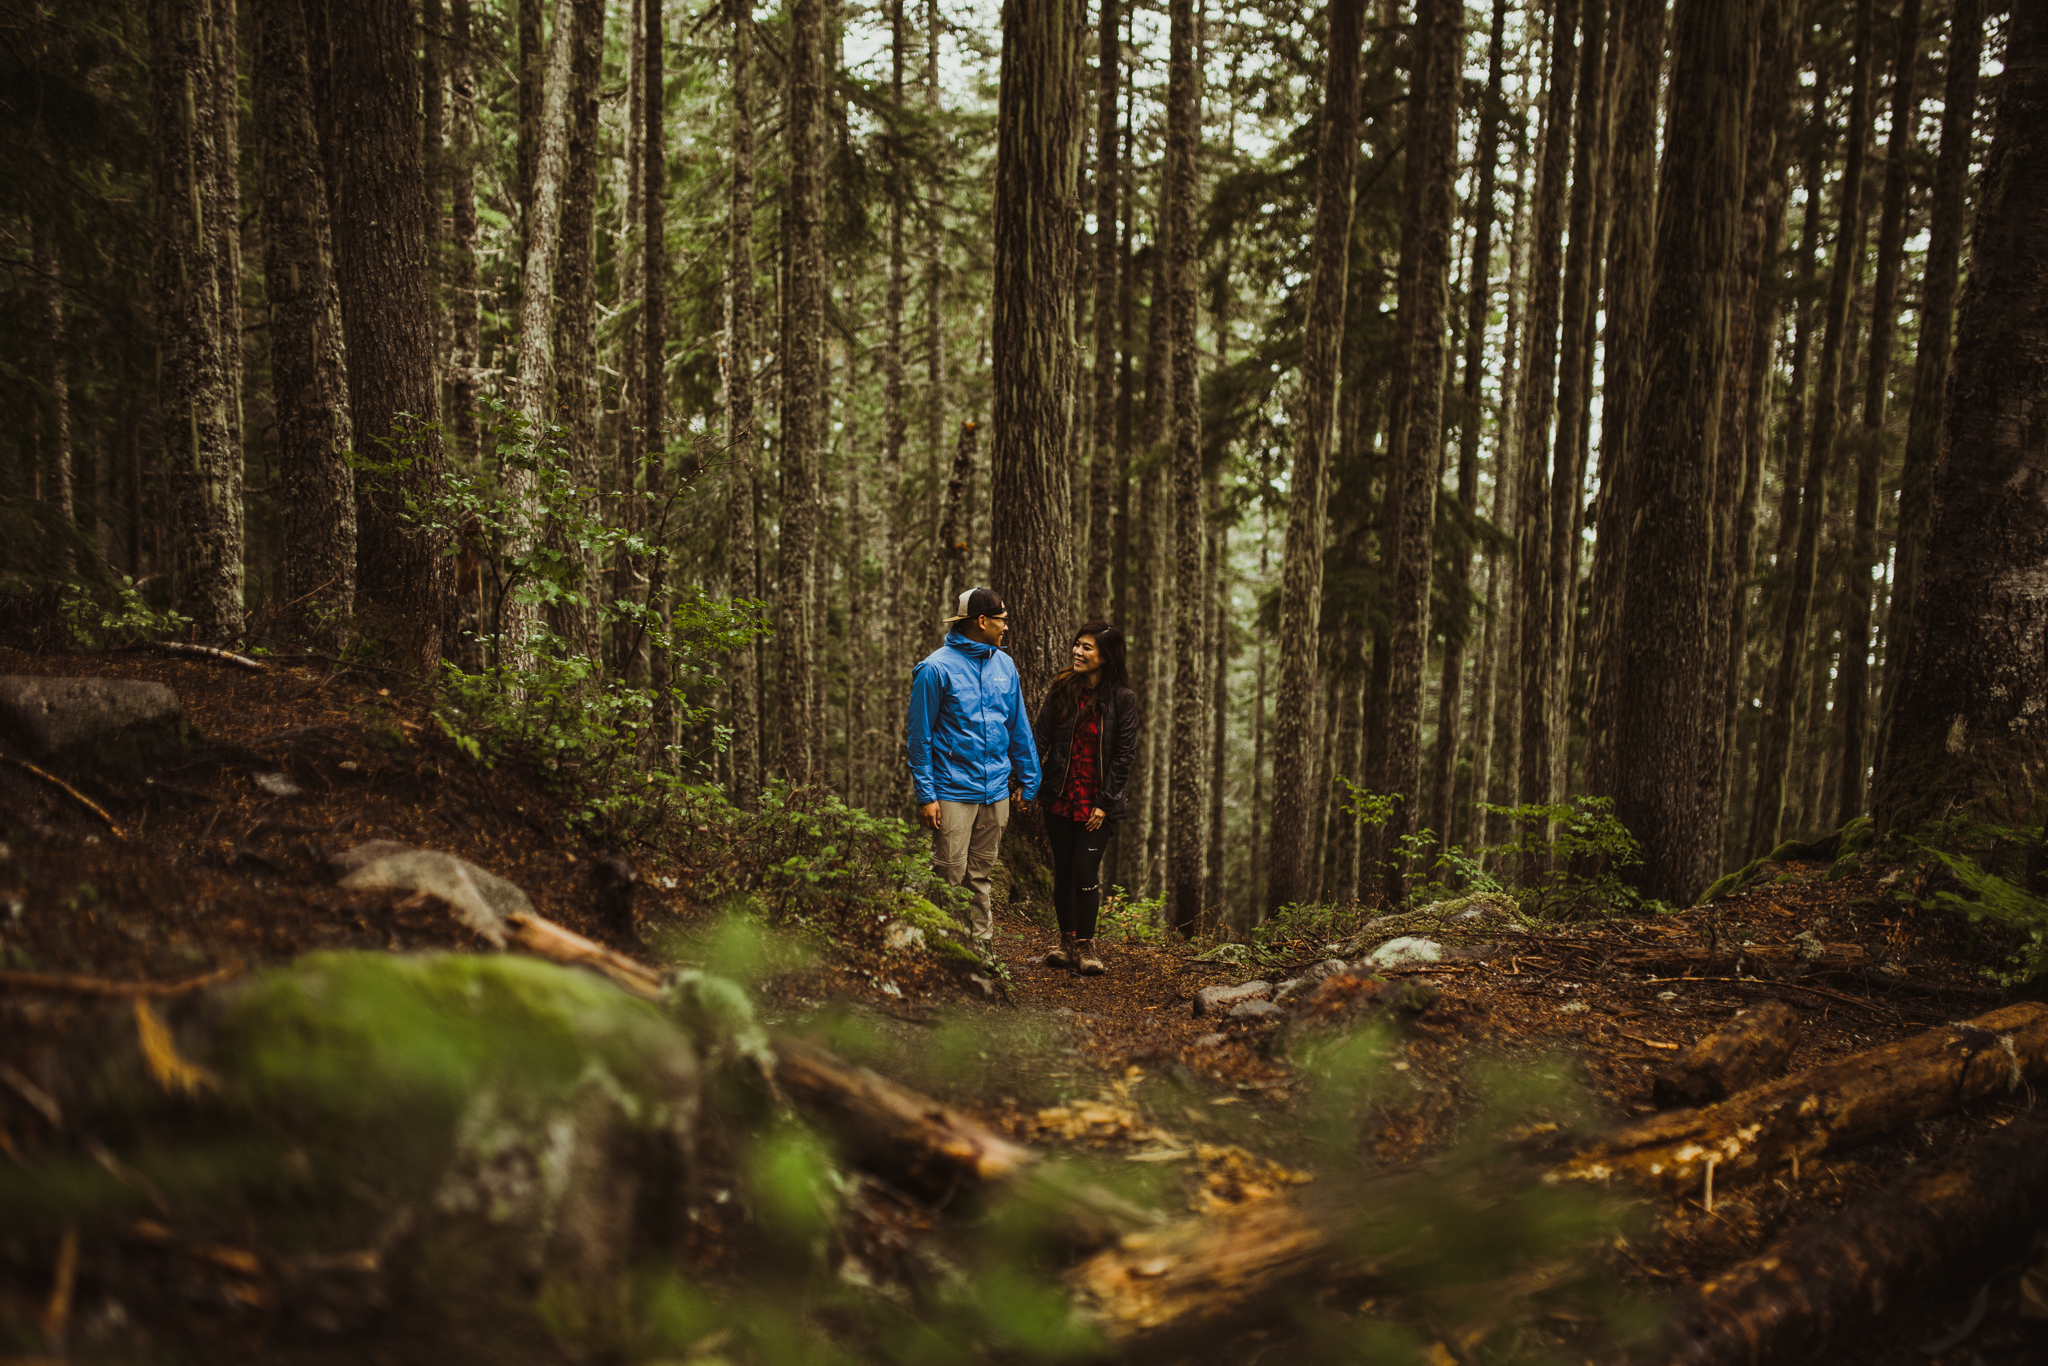 ©Isaiah-&-Taylor-Photography---Hidden-Lake-Cascade-Mountains-Engagement,-Washington-015.jpg